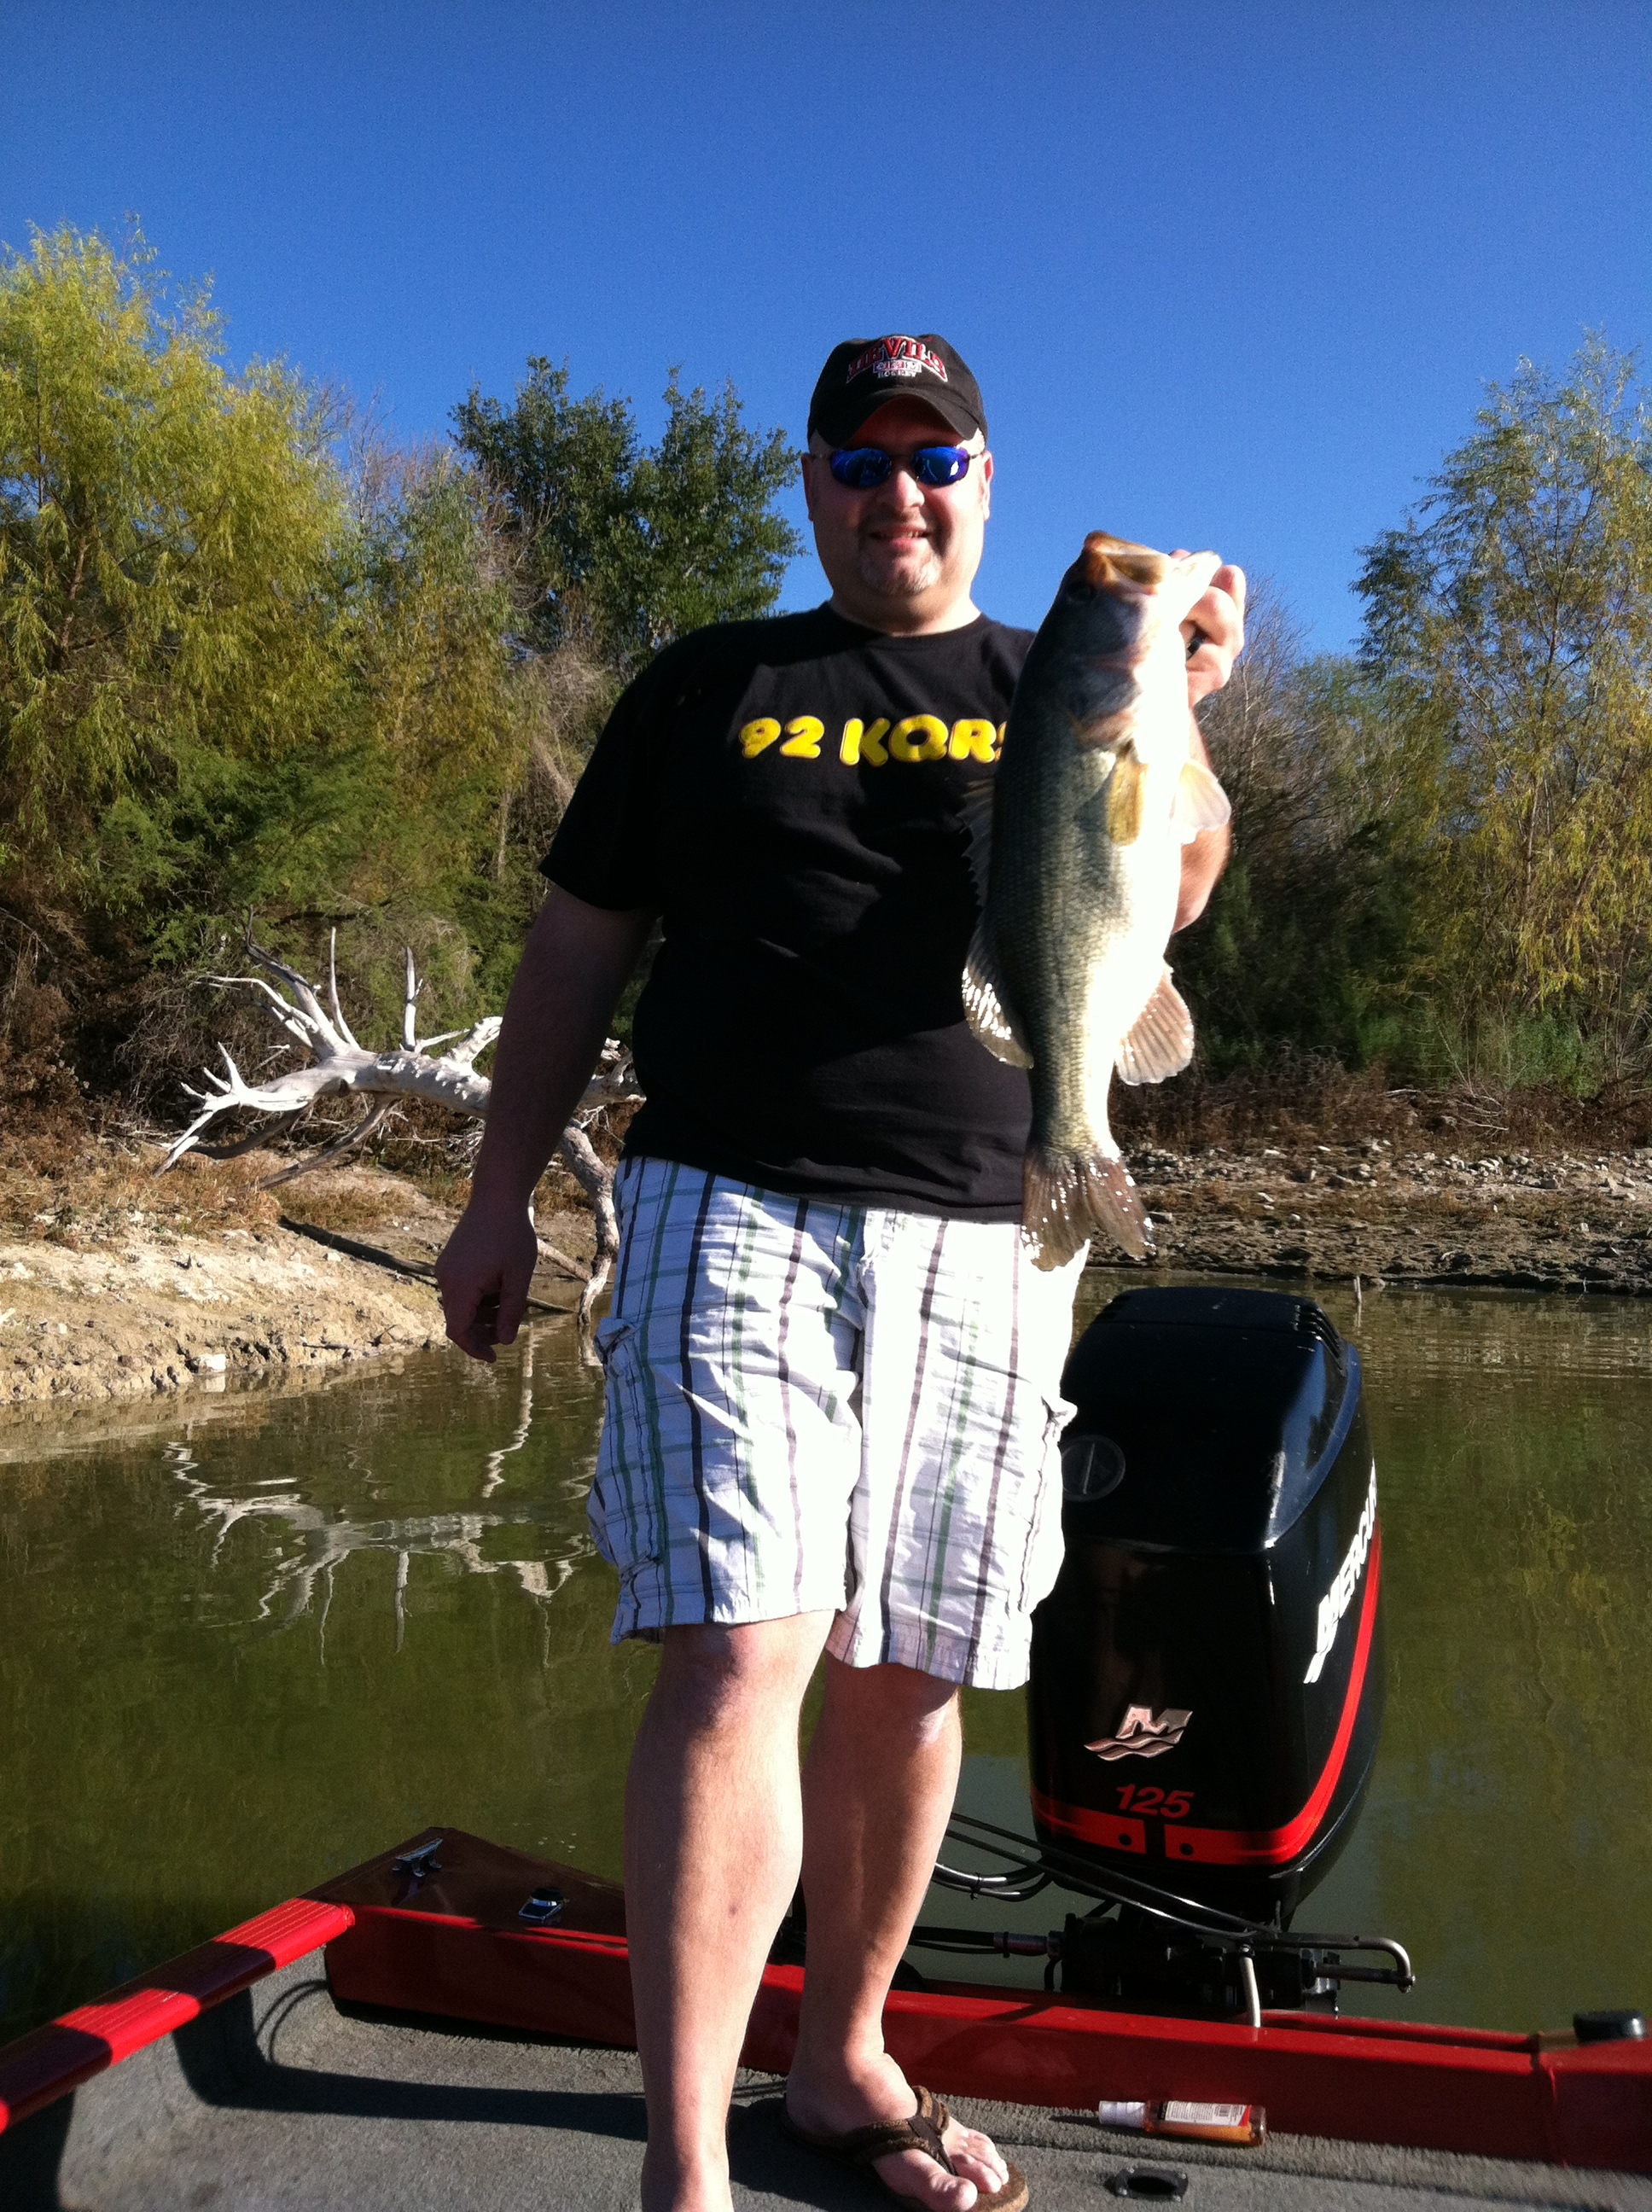 Chad Paffel Wausau Wisconsin  We were fishing in Janurary at Choke Canyon. I have never fished a